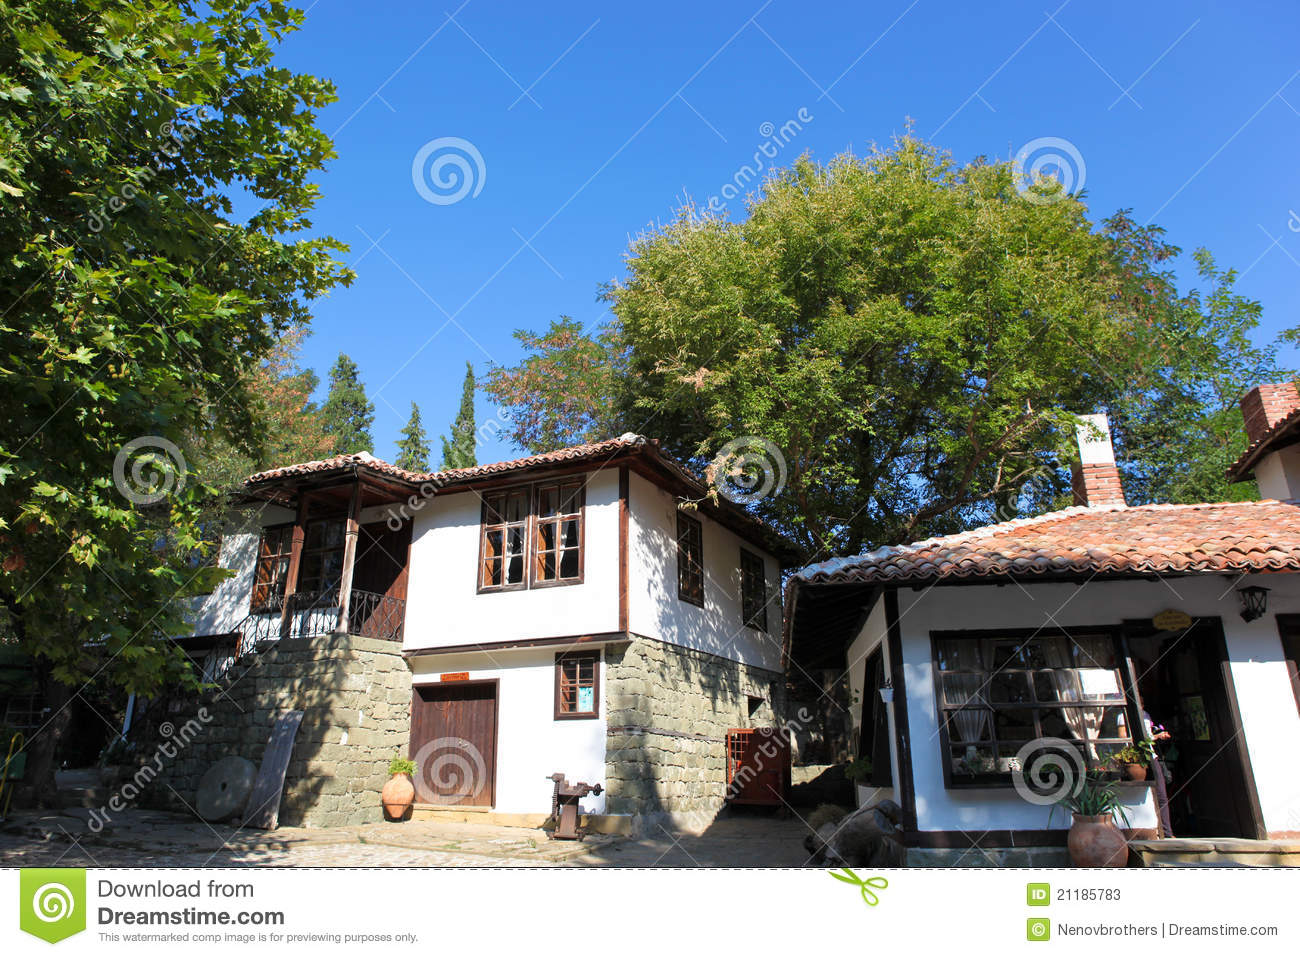 The view of houses in Aytos, Bulgaria